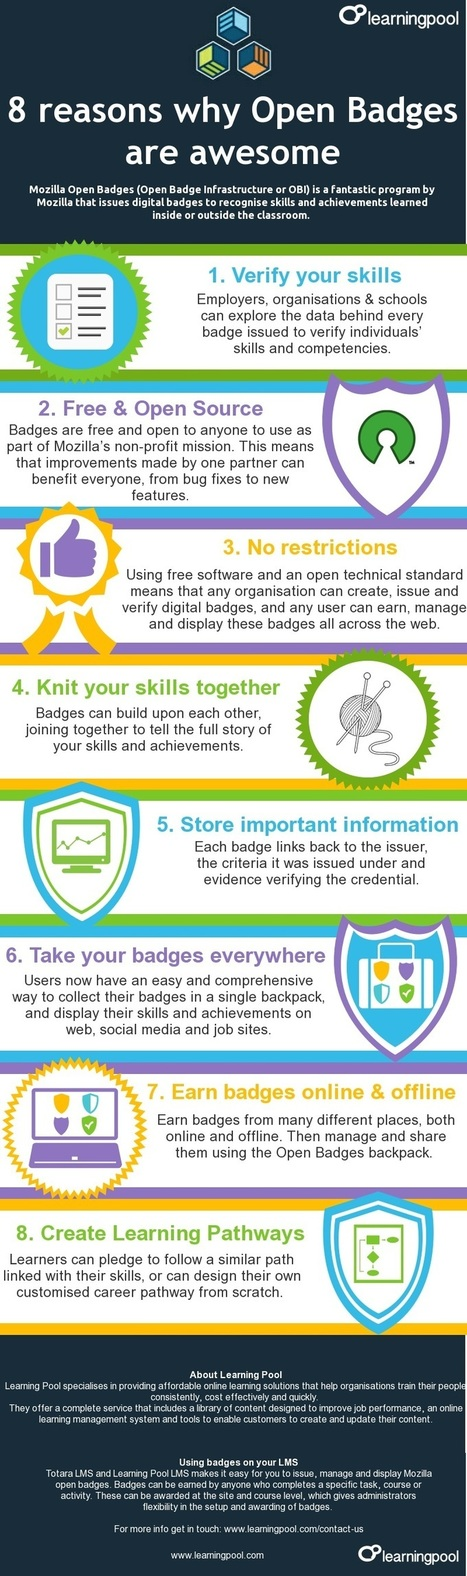 8 Reasons Why Open Badges Are Awesome | Historia e Tecnologia | Scoop.it